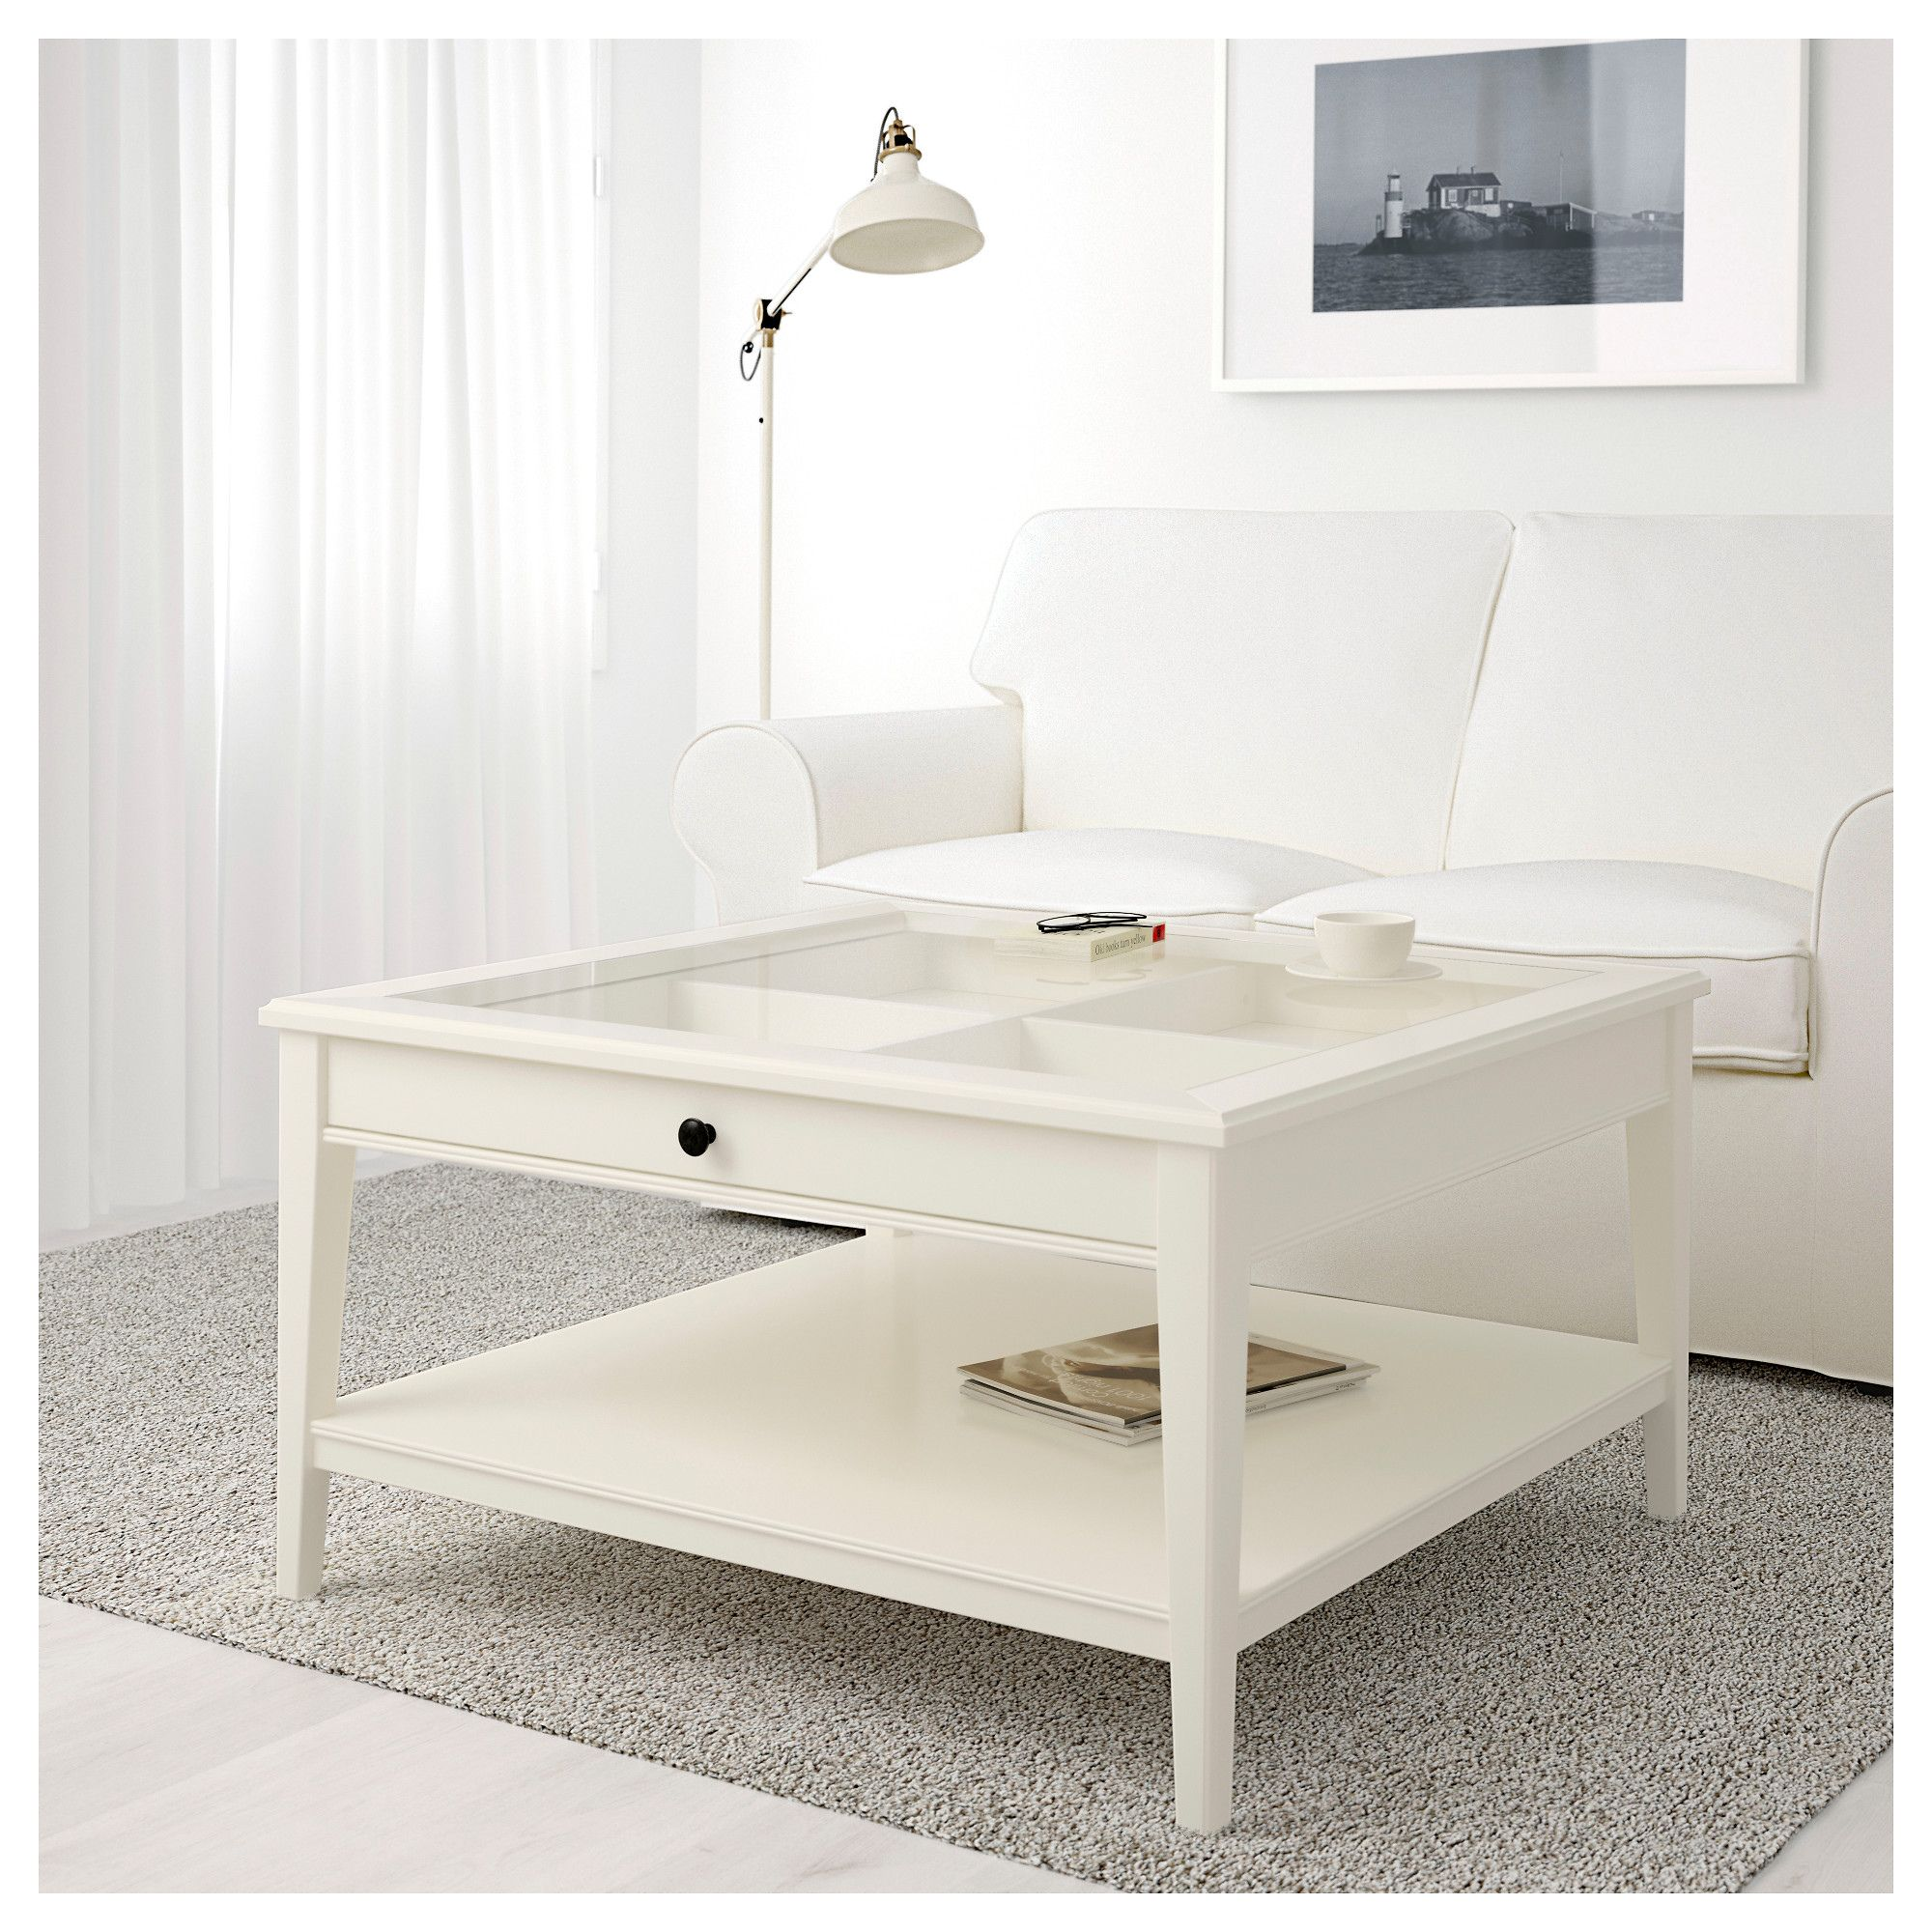 Glass coffee table in living room white glass coffee tables  sofa sets for living room check more at